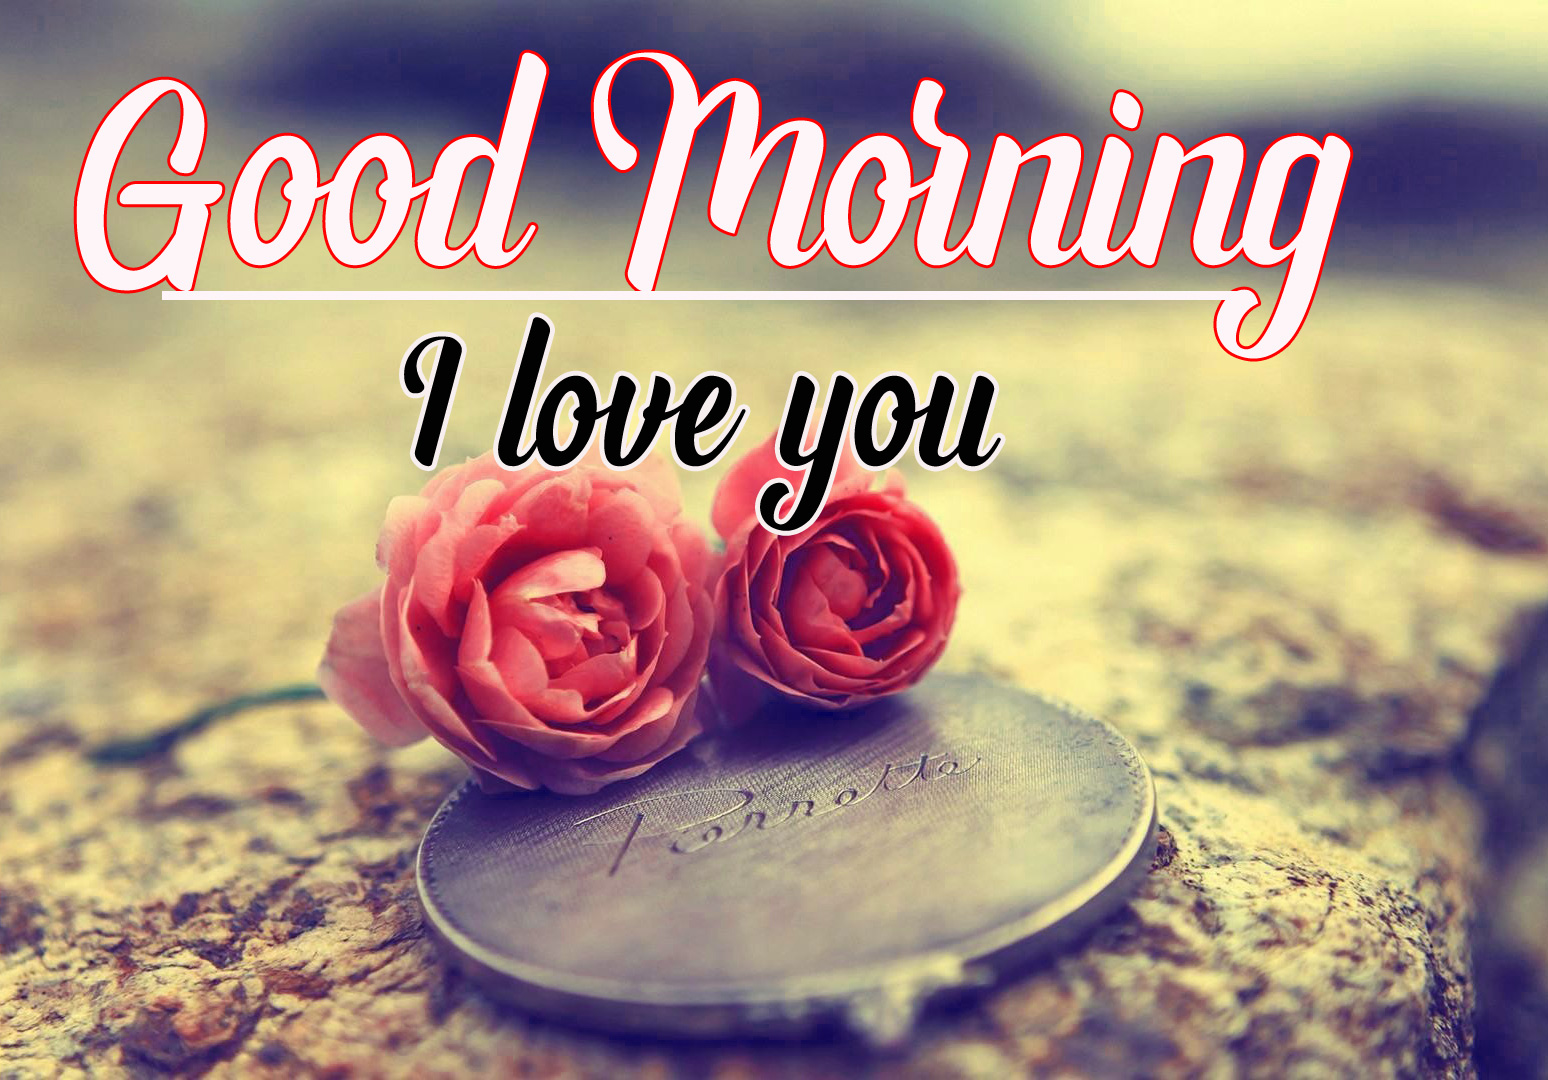 Beautiful Good Morning Images Pics Wallpaper for Facebook